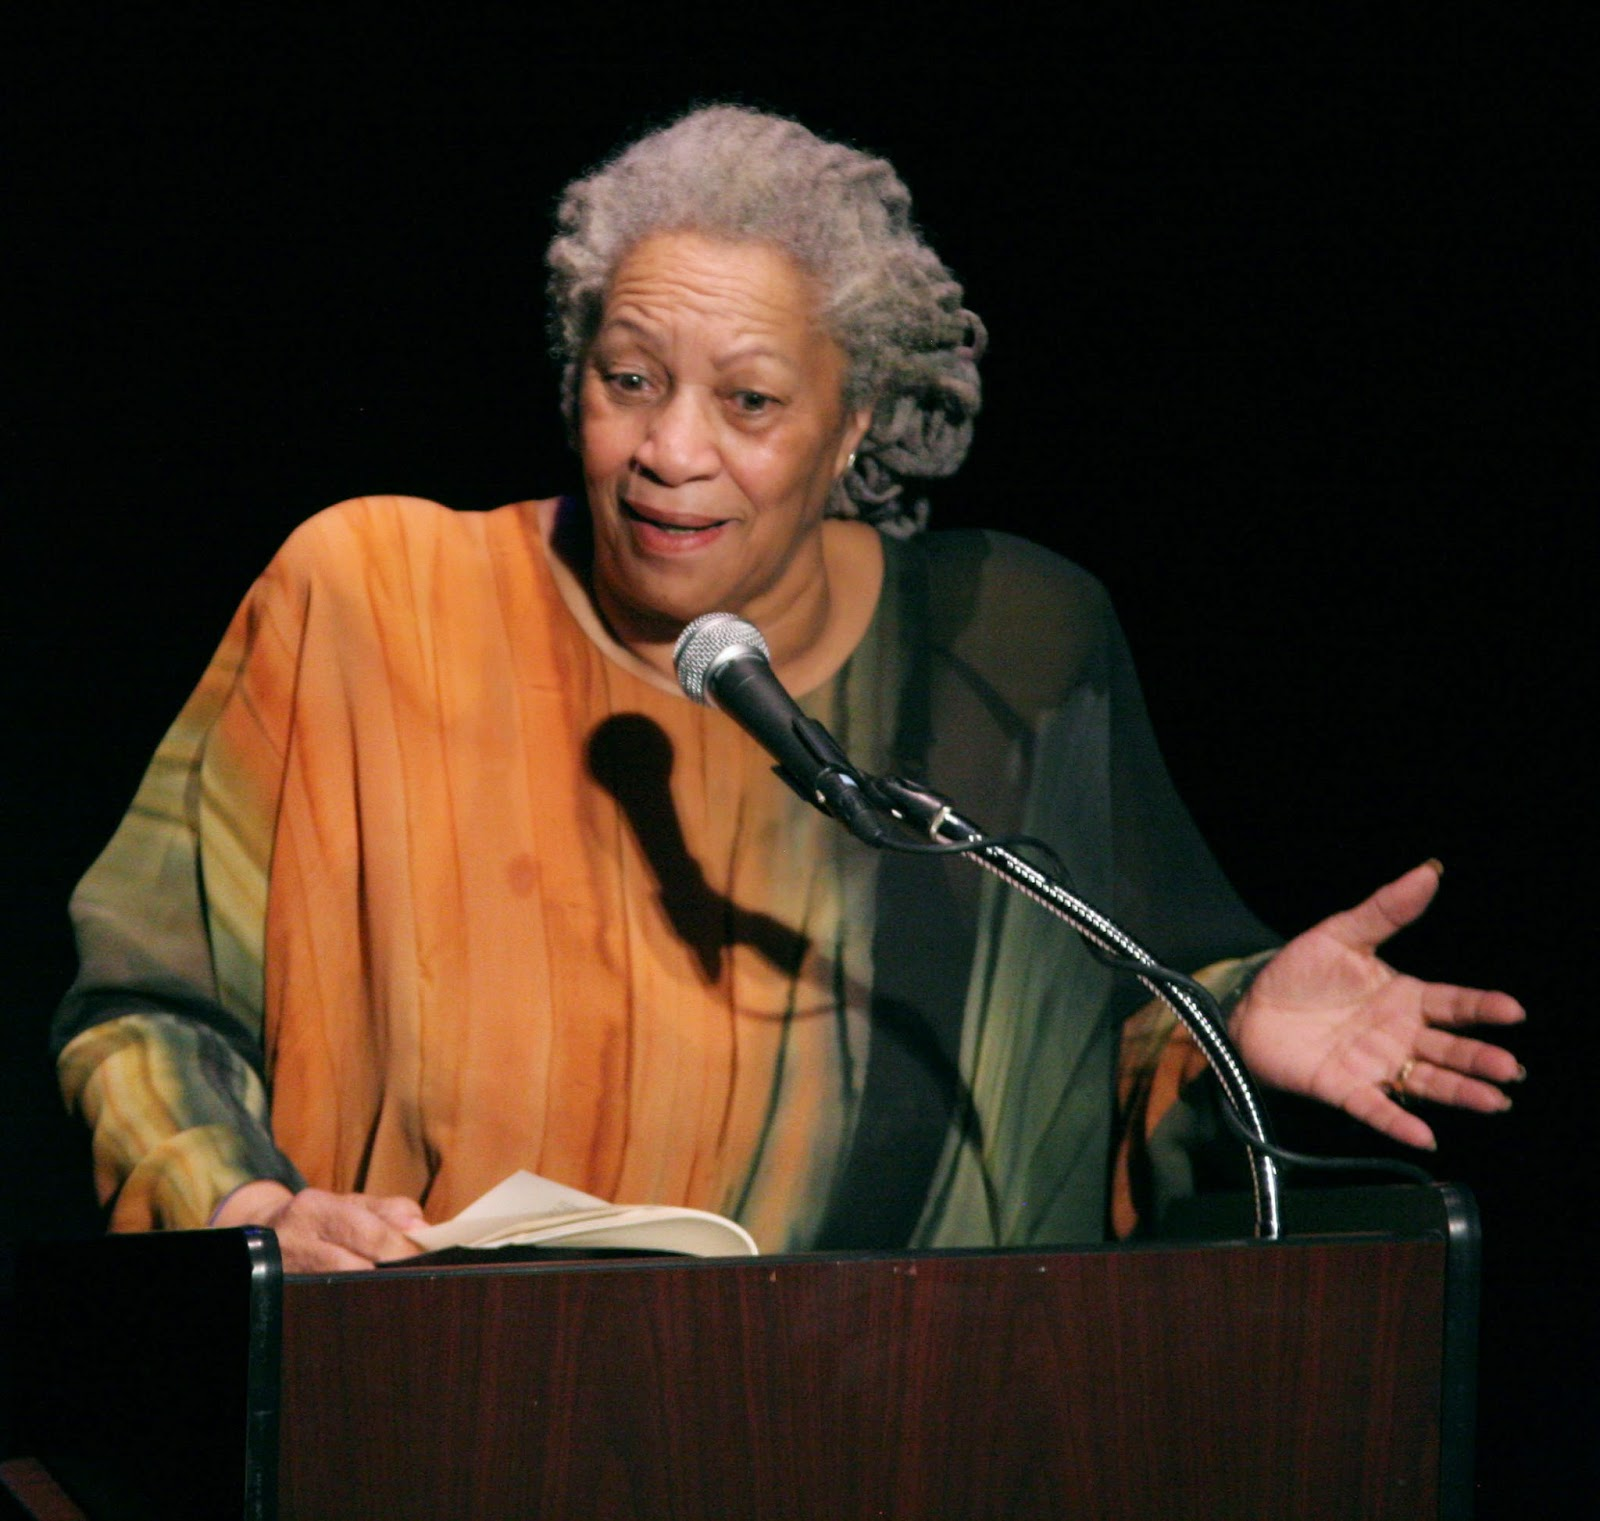 Photo of Toni Morrison.  Sourcehttp://upload.wikimedia.org/wikipedia/commons/0/04/Toni_Morrison_2008-2.jpg